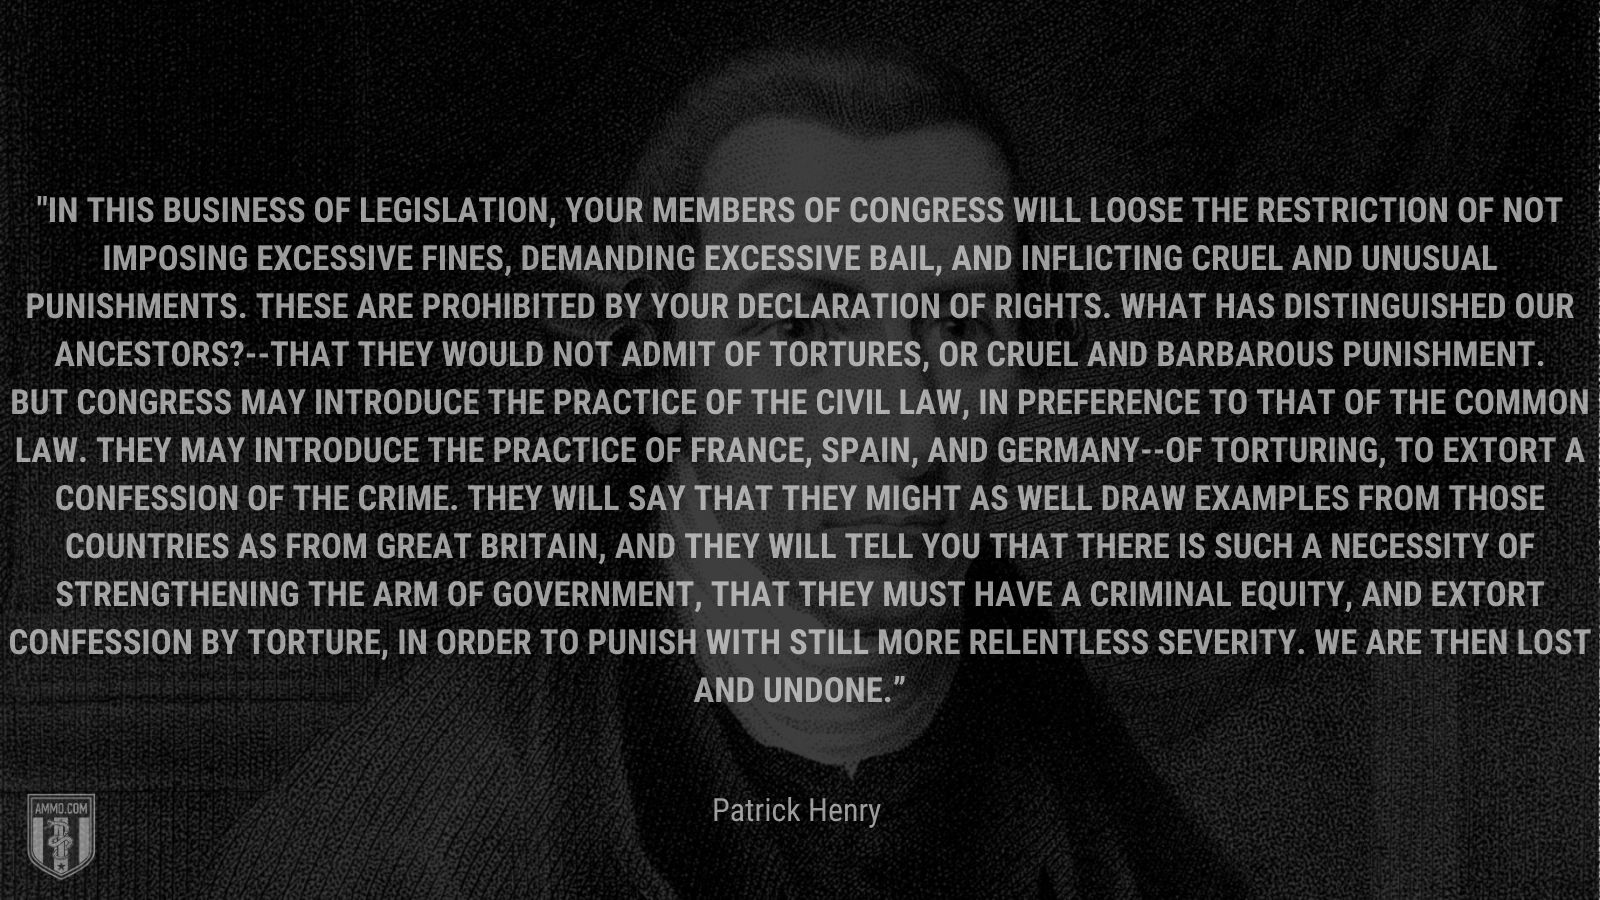 """""""In this business of legislation, your members of Congress will loose the restriction of not imposing excessive fines, demanding excessive bail, and inflicting cruel and unusual punishments. These are prohibited by your declaration of rights. What has distinguished our ancestors?--That they would not admit of tortures, or cruel and barbarous punishment. But Congress may introduce the practice of the civil law, in preference to that of the common law. They may introduce the practice of France, Spain, and Germany--of torturing, to extort a confession of the crime. They will say that they might as well draw examples from those countries as from Great Britain, and they will tell you that there is such a necessity of strengthening the arm of government, that they must have a criminal equity, and extort confession by torture, in order to punish with still more relentless severity. We are then lost and undone."""" - Patrick Henry"""